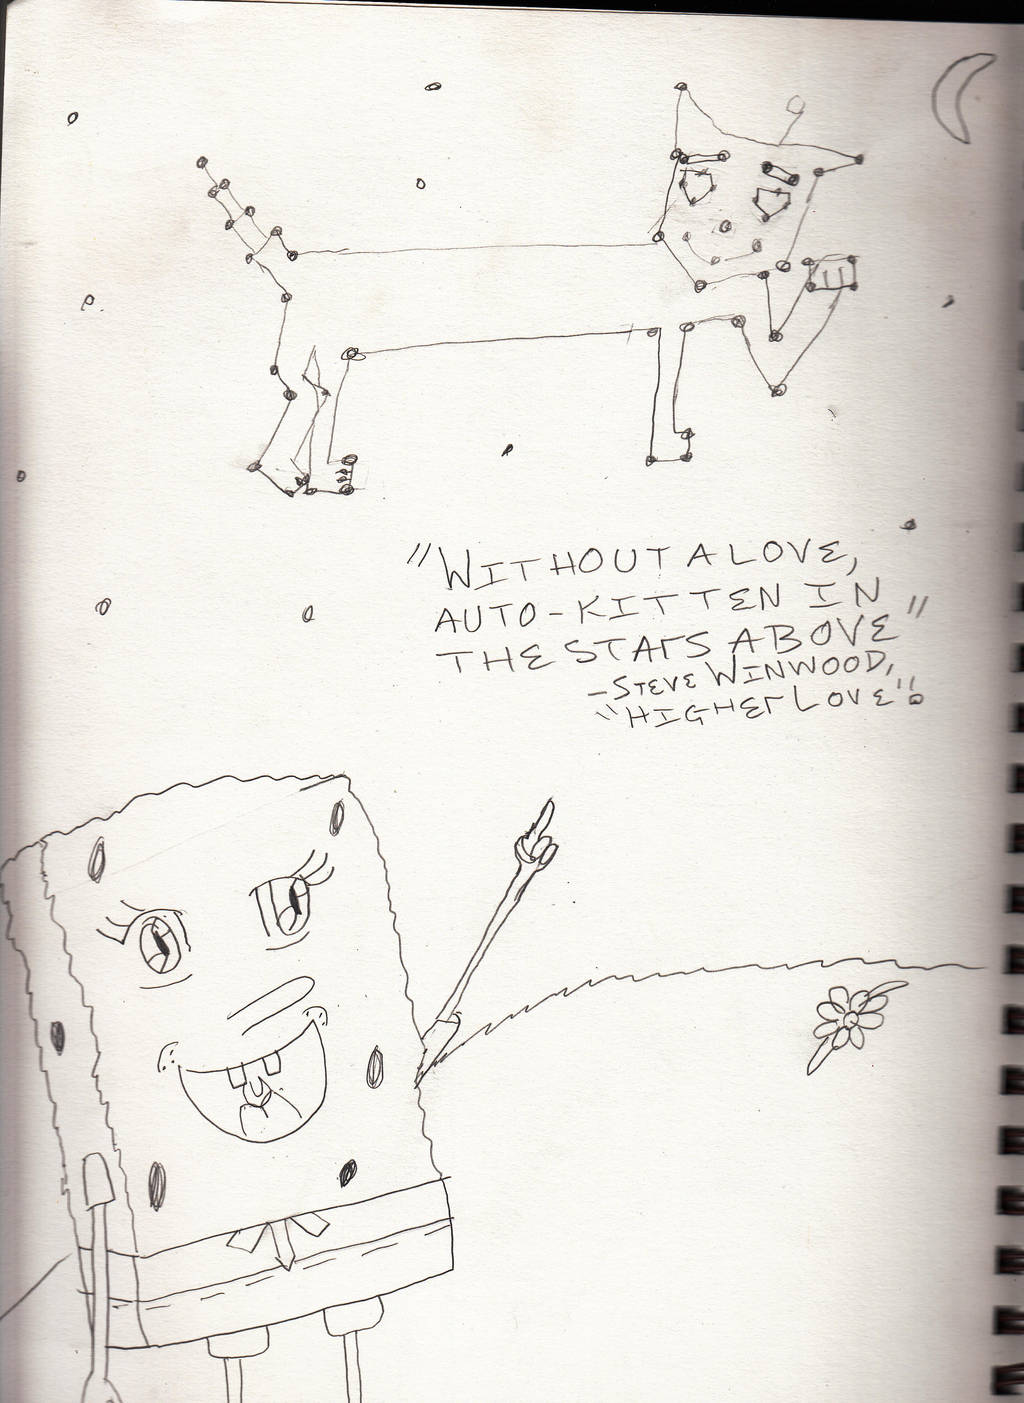 Spongebobs Misheard Lyrics Higher Love By Agoodcupoftea On Deviantart